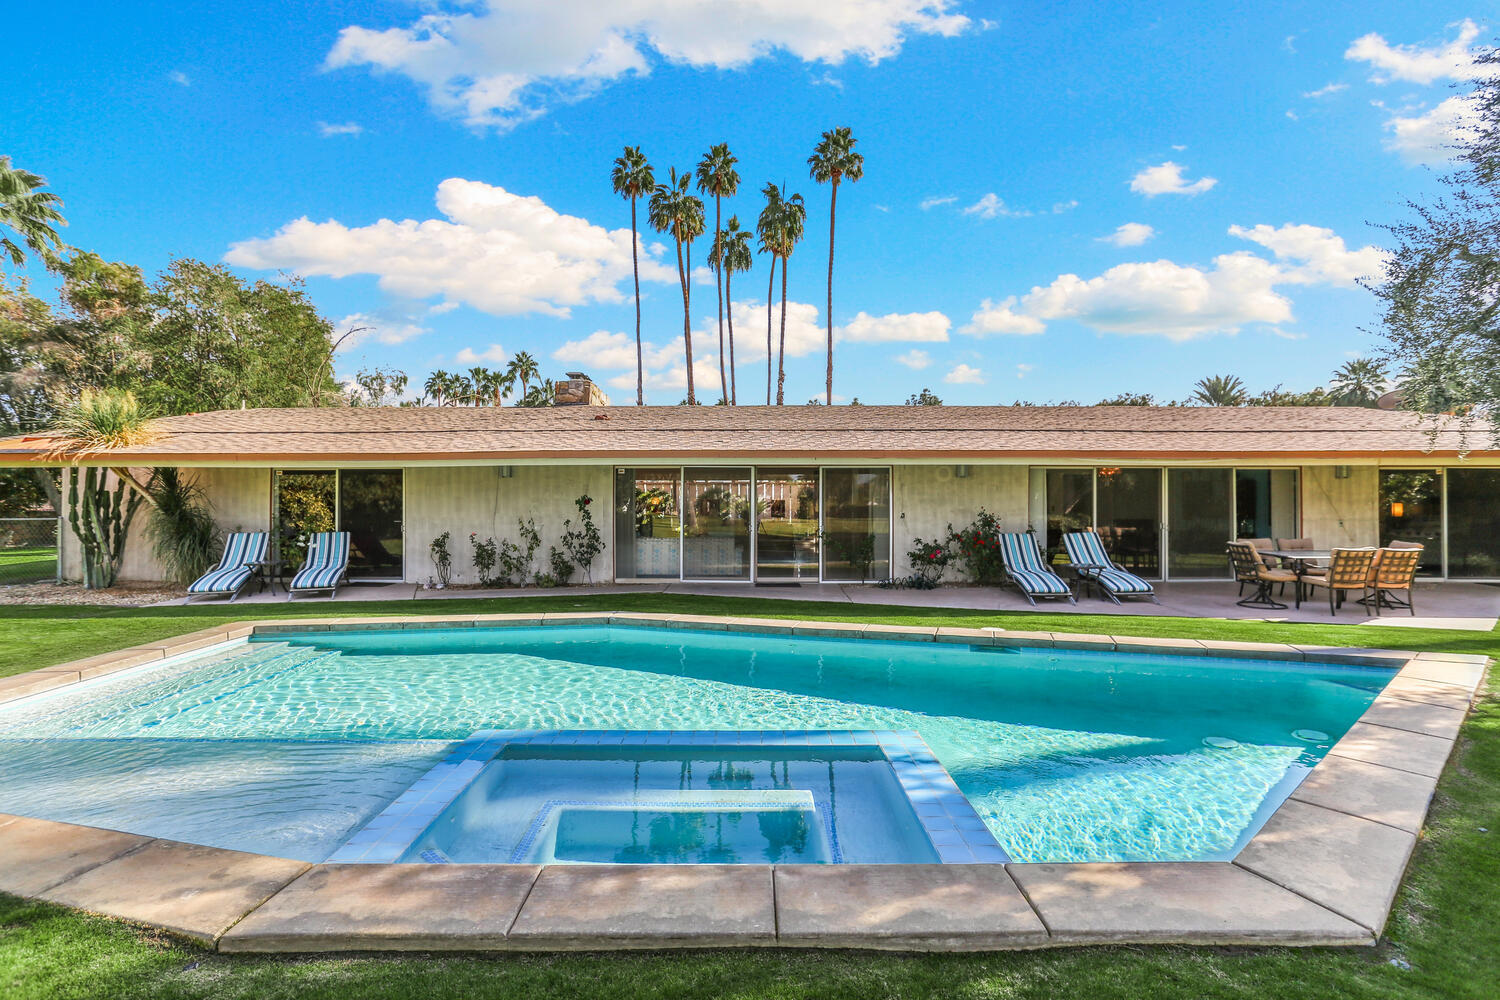 ..Award-Winning Mid Century Modern. Authentic time capsules like this beauty don't land on the market often. And when they do, they wind up selling in a flash. Ready for a new buyer to cherish this snazzy Atomic Age ranch built in 1958! Over the past half-decade, the property has been meticulously restored, & festooned w/ authentic furniture & accessories. Check out the terrazzo tile! Or those Sputnik lights! The geometric cutout screens! The shag carpeting! For fans of midcentury modern style, the photos are a feast for the eyes. The residence was originally designed by the renowned midcentury architect William F. Cody, & some of the original cabinets & bathrooms remain. It was remodeled in the 1980s, has since been restored to replicate the original decor. Even the orange, brown, & aqua color scheme was reinstated. The gorgeous restoration work earned the home a spot on the 2019 Signature Palm Springs Modernism Home Tour. The home also received a residential restoration preservation award in 2014 from the Palm Springs Modern Committee. The original sunken cocktail bar, described by the original owner, Sharon Simons, as 'the cat's pajamas,' is a true treat. And the chartreuse-upholstered bar stools flanking the space are scene stealers.The kitchen now boasts a more modern island w/ a sink, but the feature was designed to blend perfectly with the rest of the house. Other kitchen highlights include yellow & aqua tiles &  Danish Mod-style cabinets